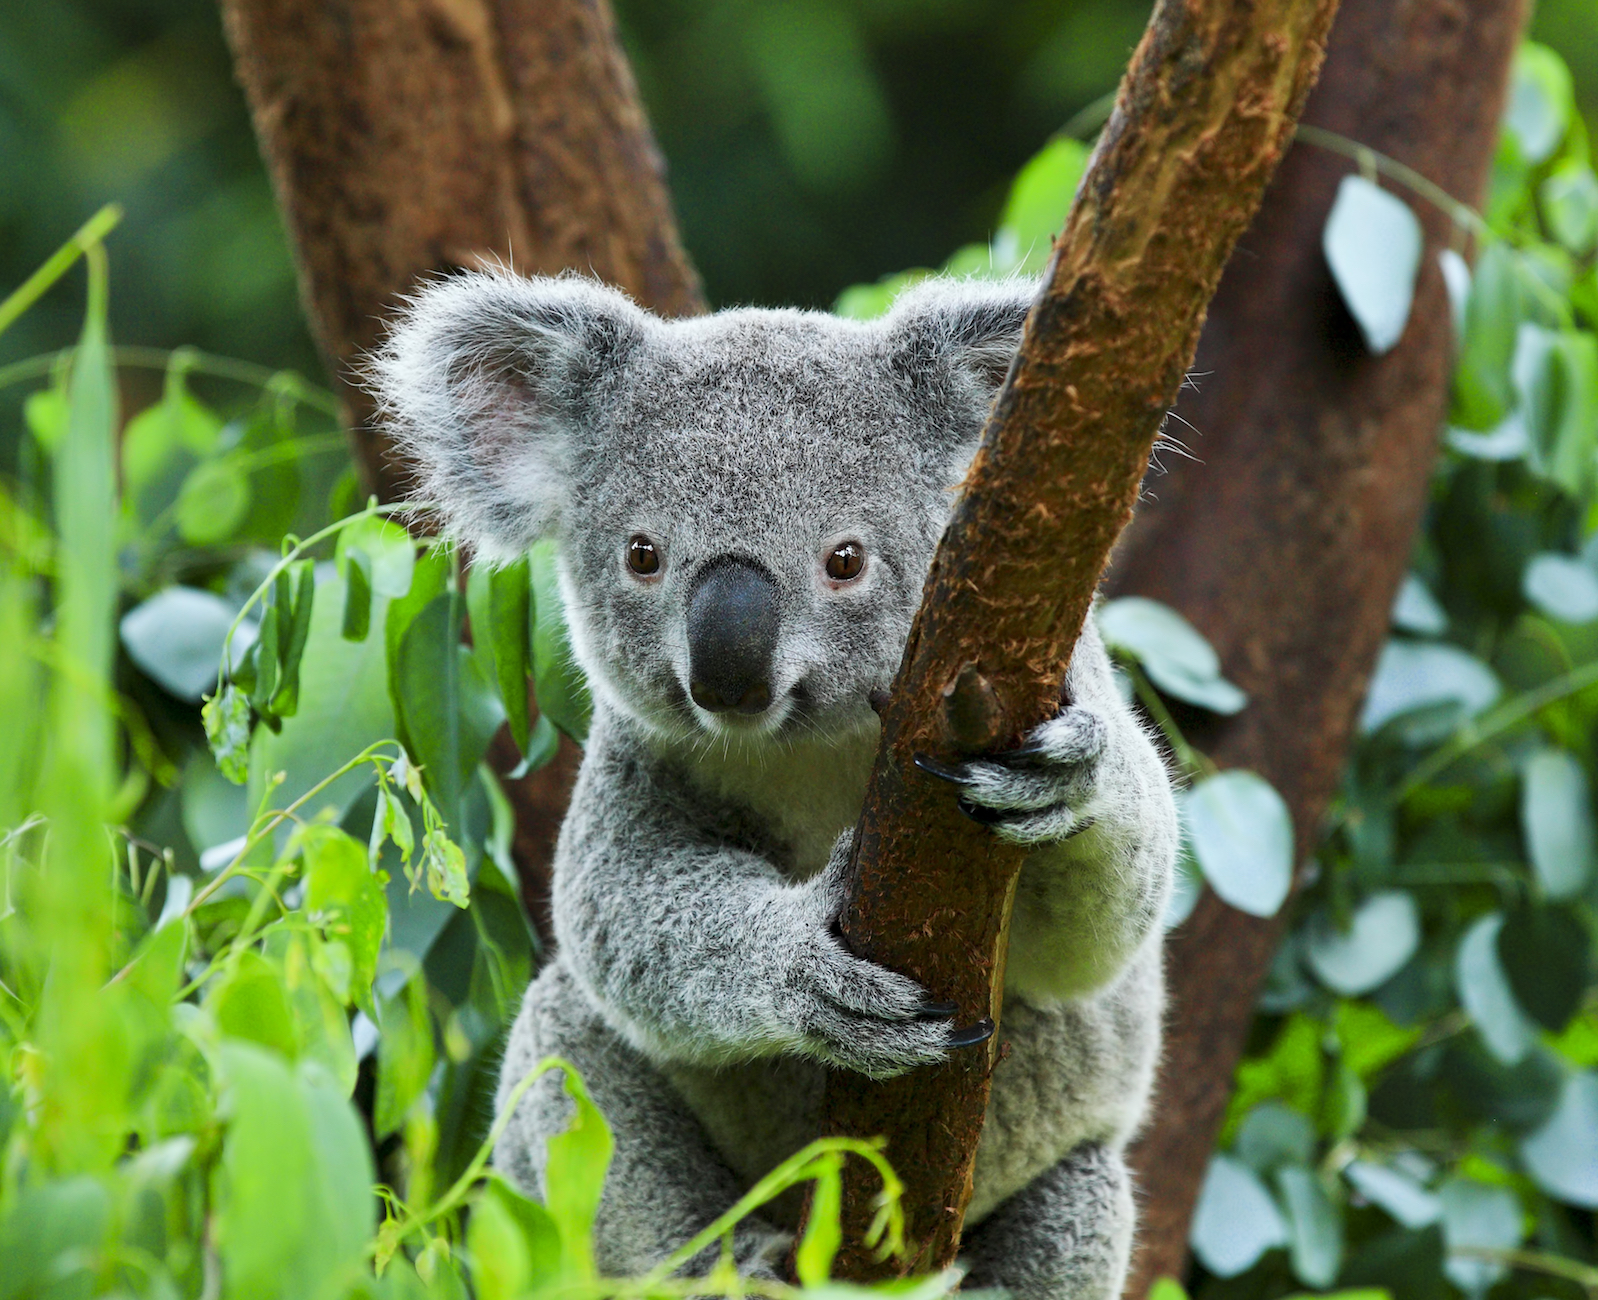 young Koala in Australian forest treated with Laser & LED for burns